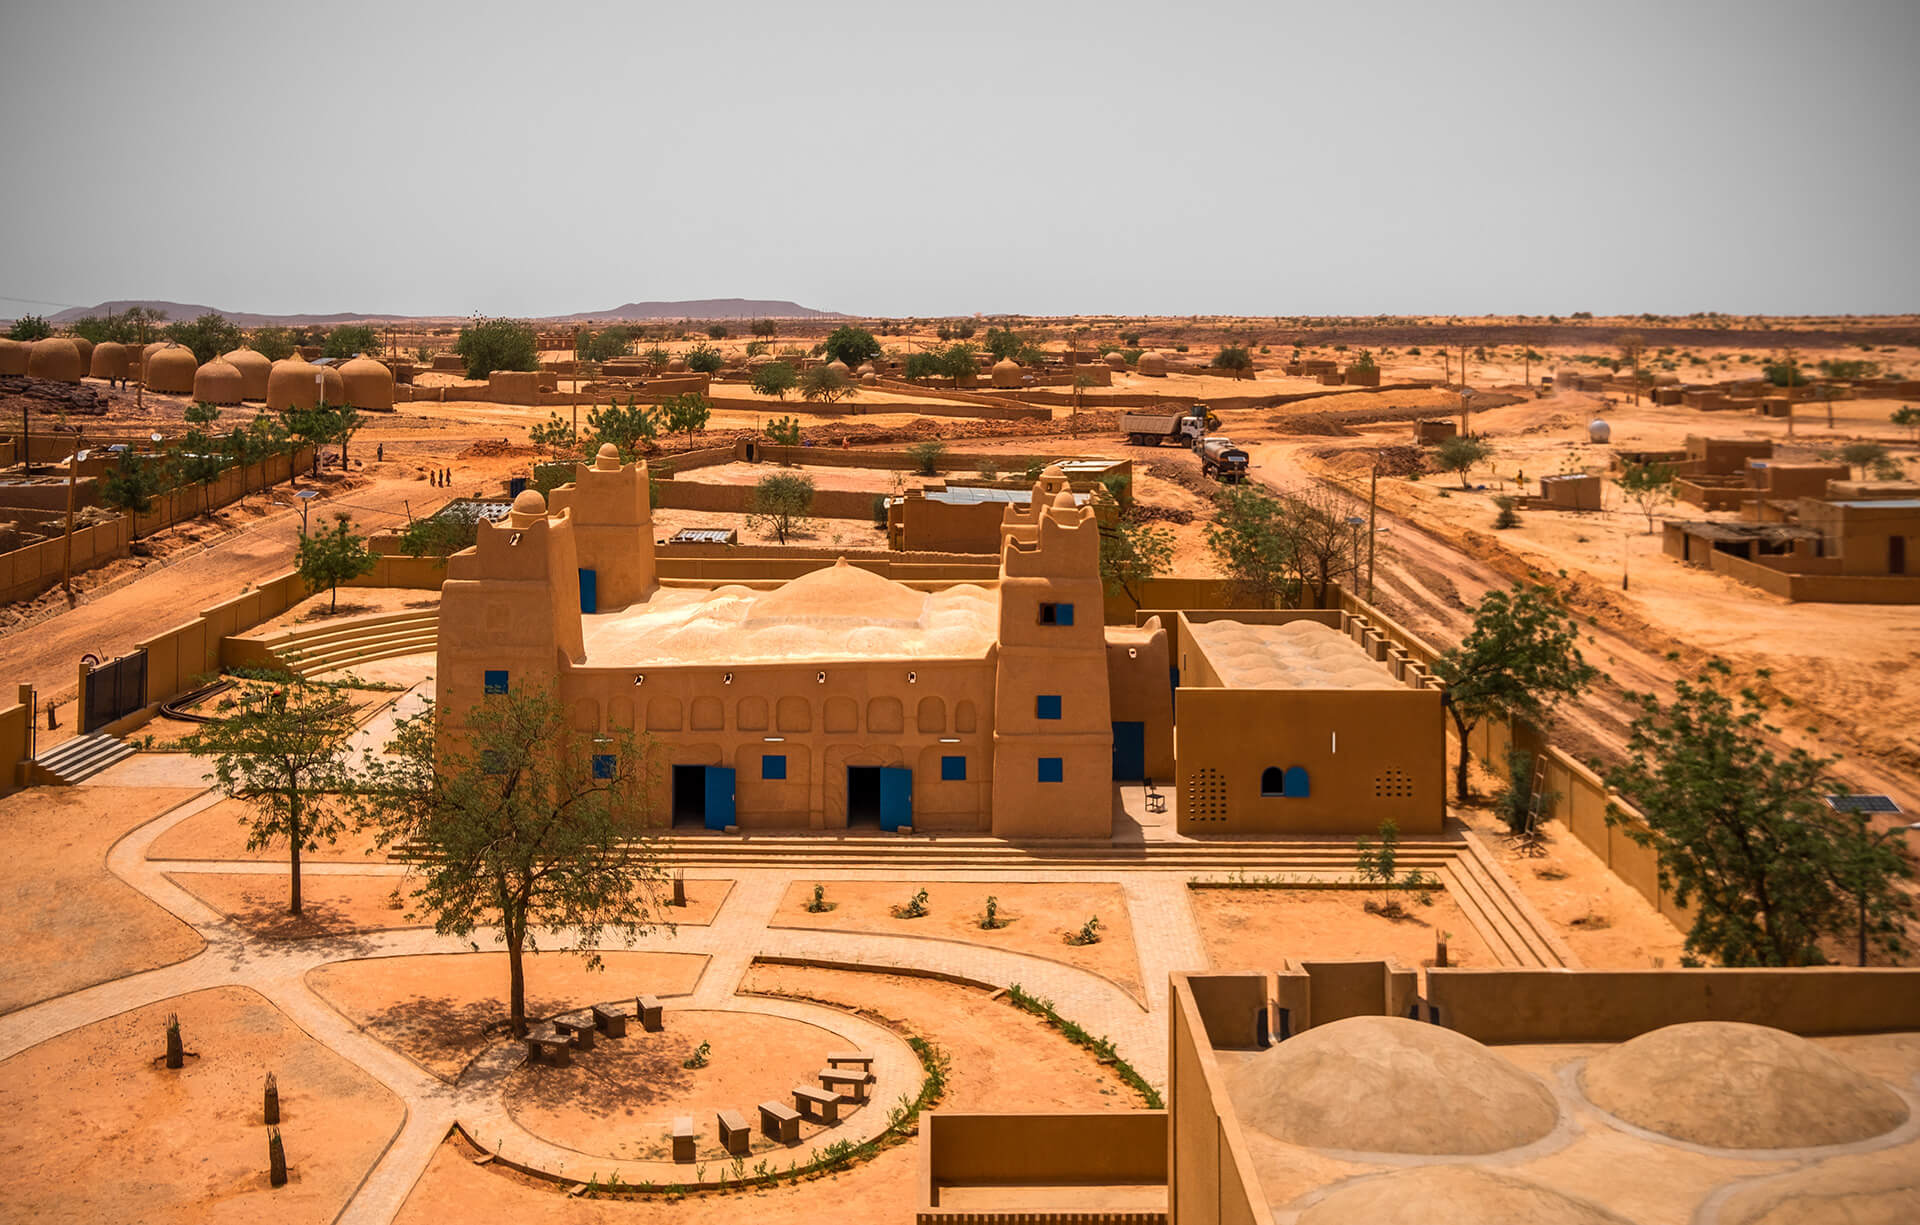 Hikma transforms a derelict mosque into a library that shares its site with a new mosque for the village of Dandaji in Niger | Yasaman Esmaili | Studio Chahar | STIRworld